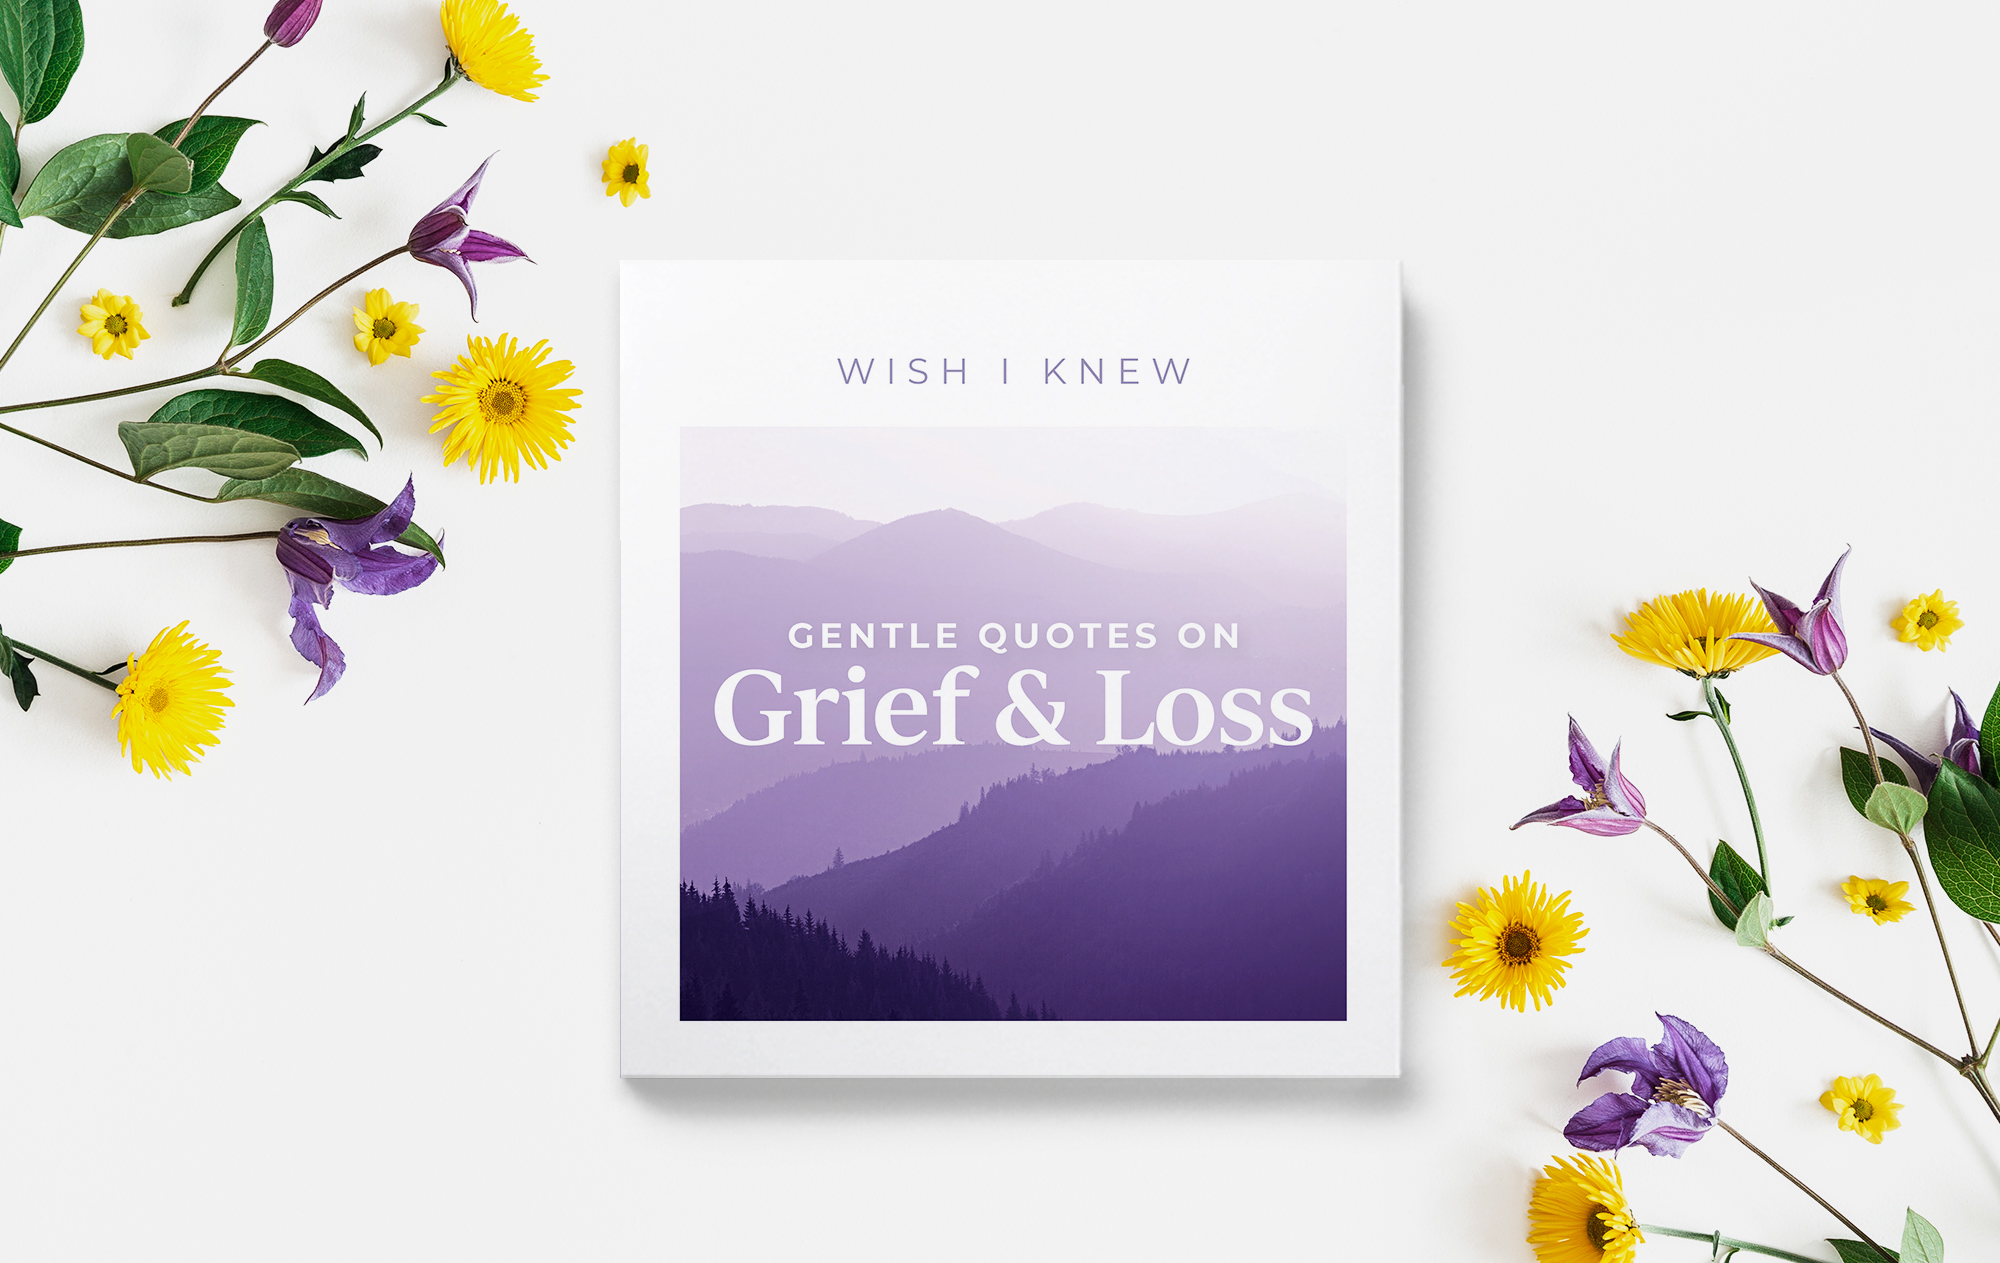 Gentle Quotes on Grief and Loss